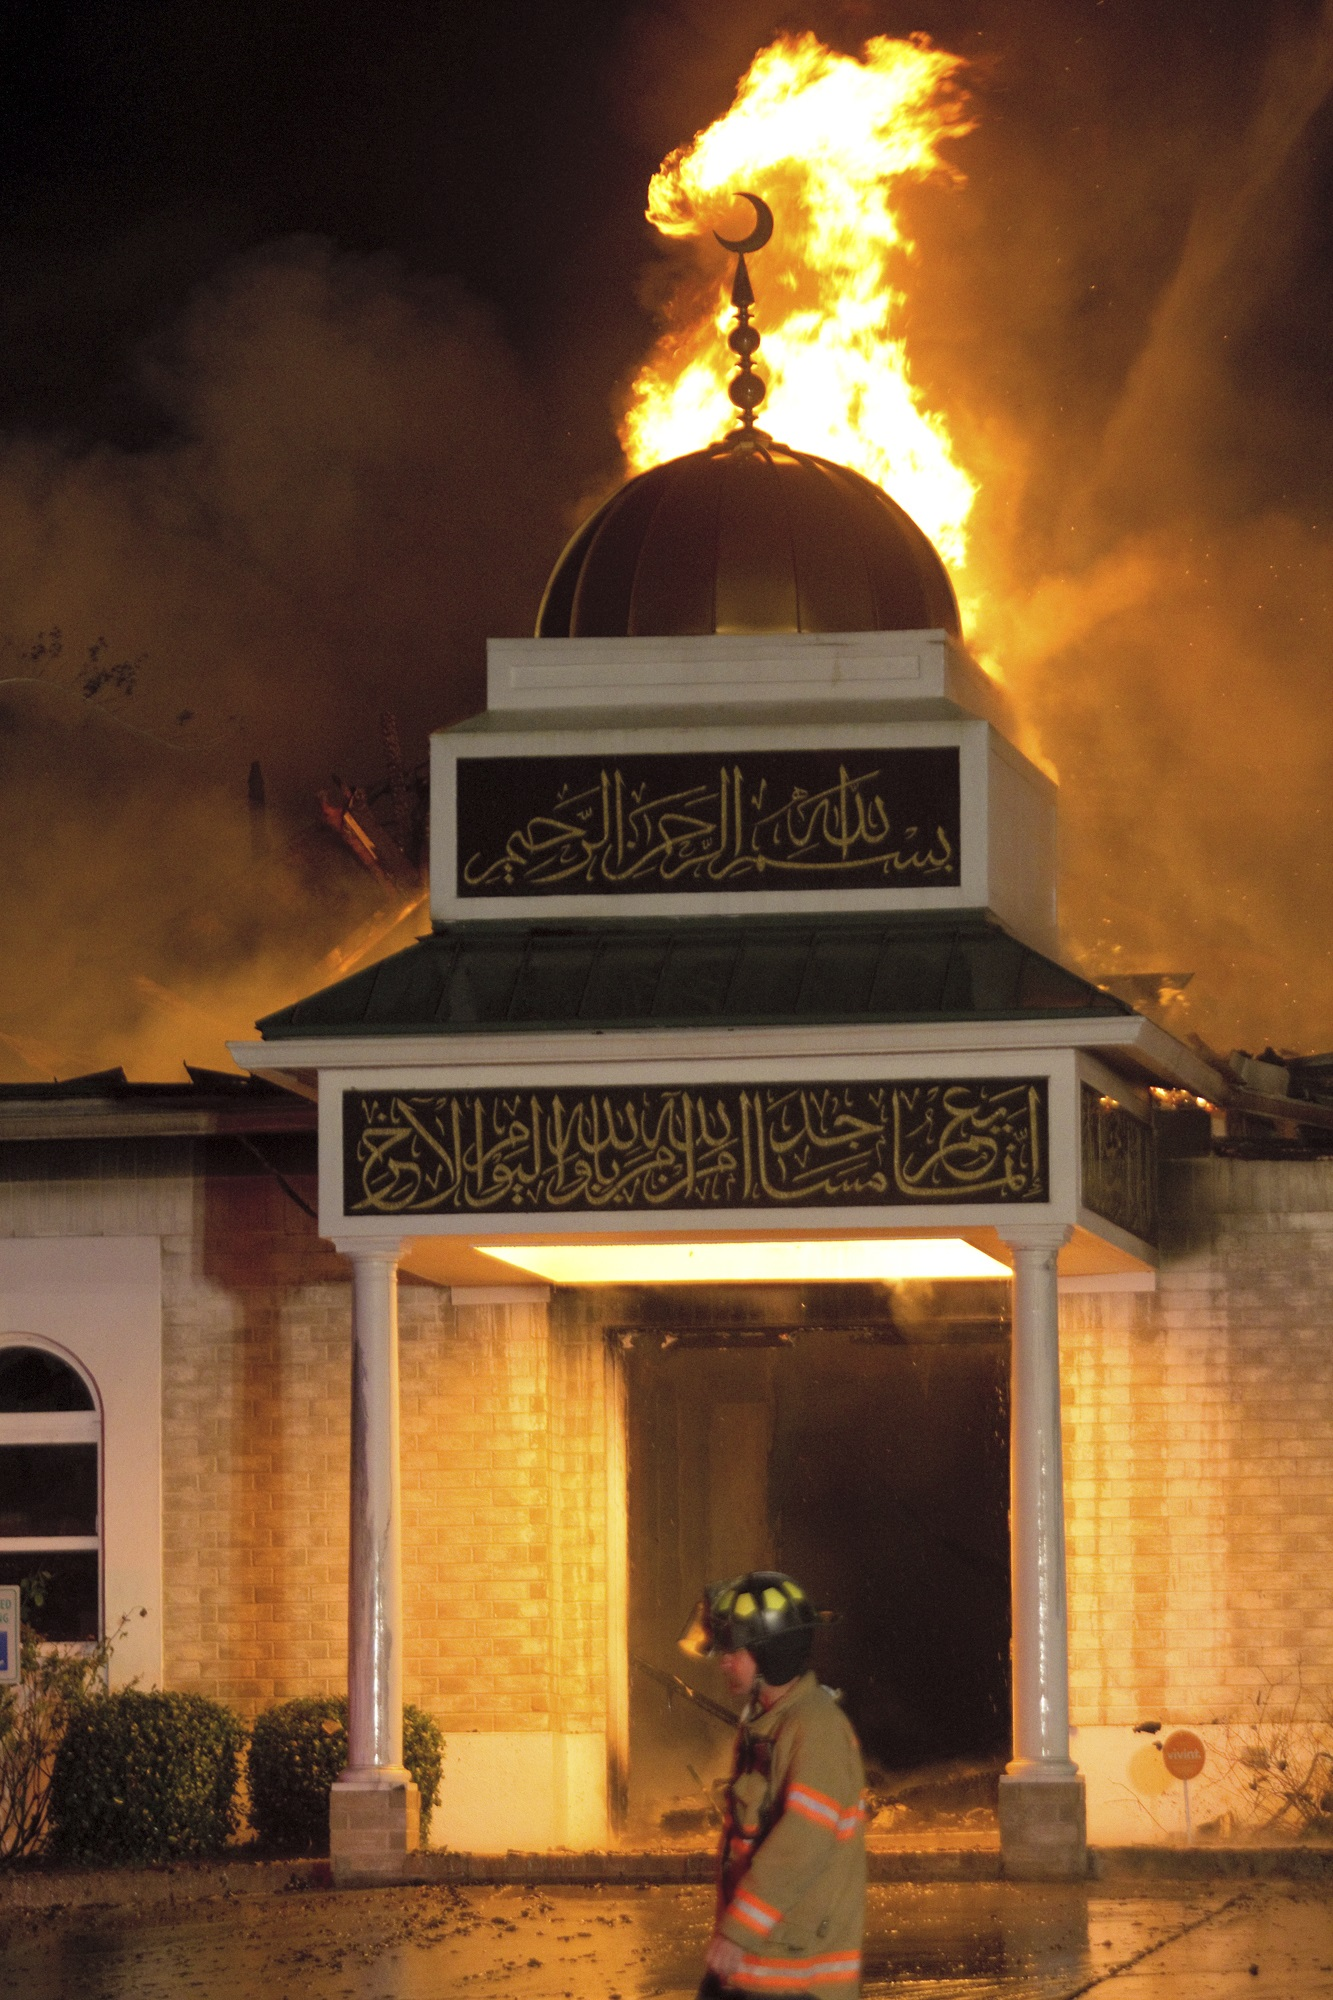 Online Car Insurance Quotes >> Suspect in Texas Mosque Fire Feared Muslims, Investigator Says